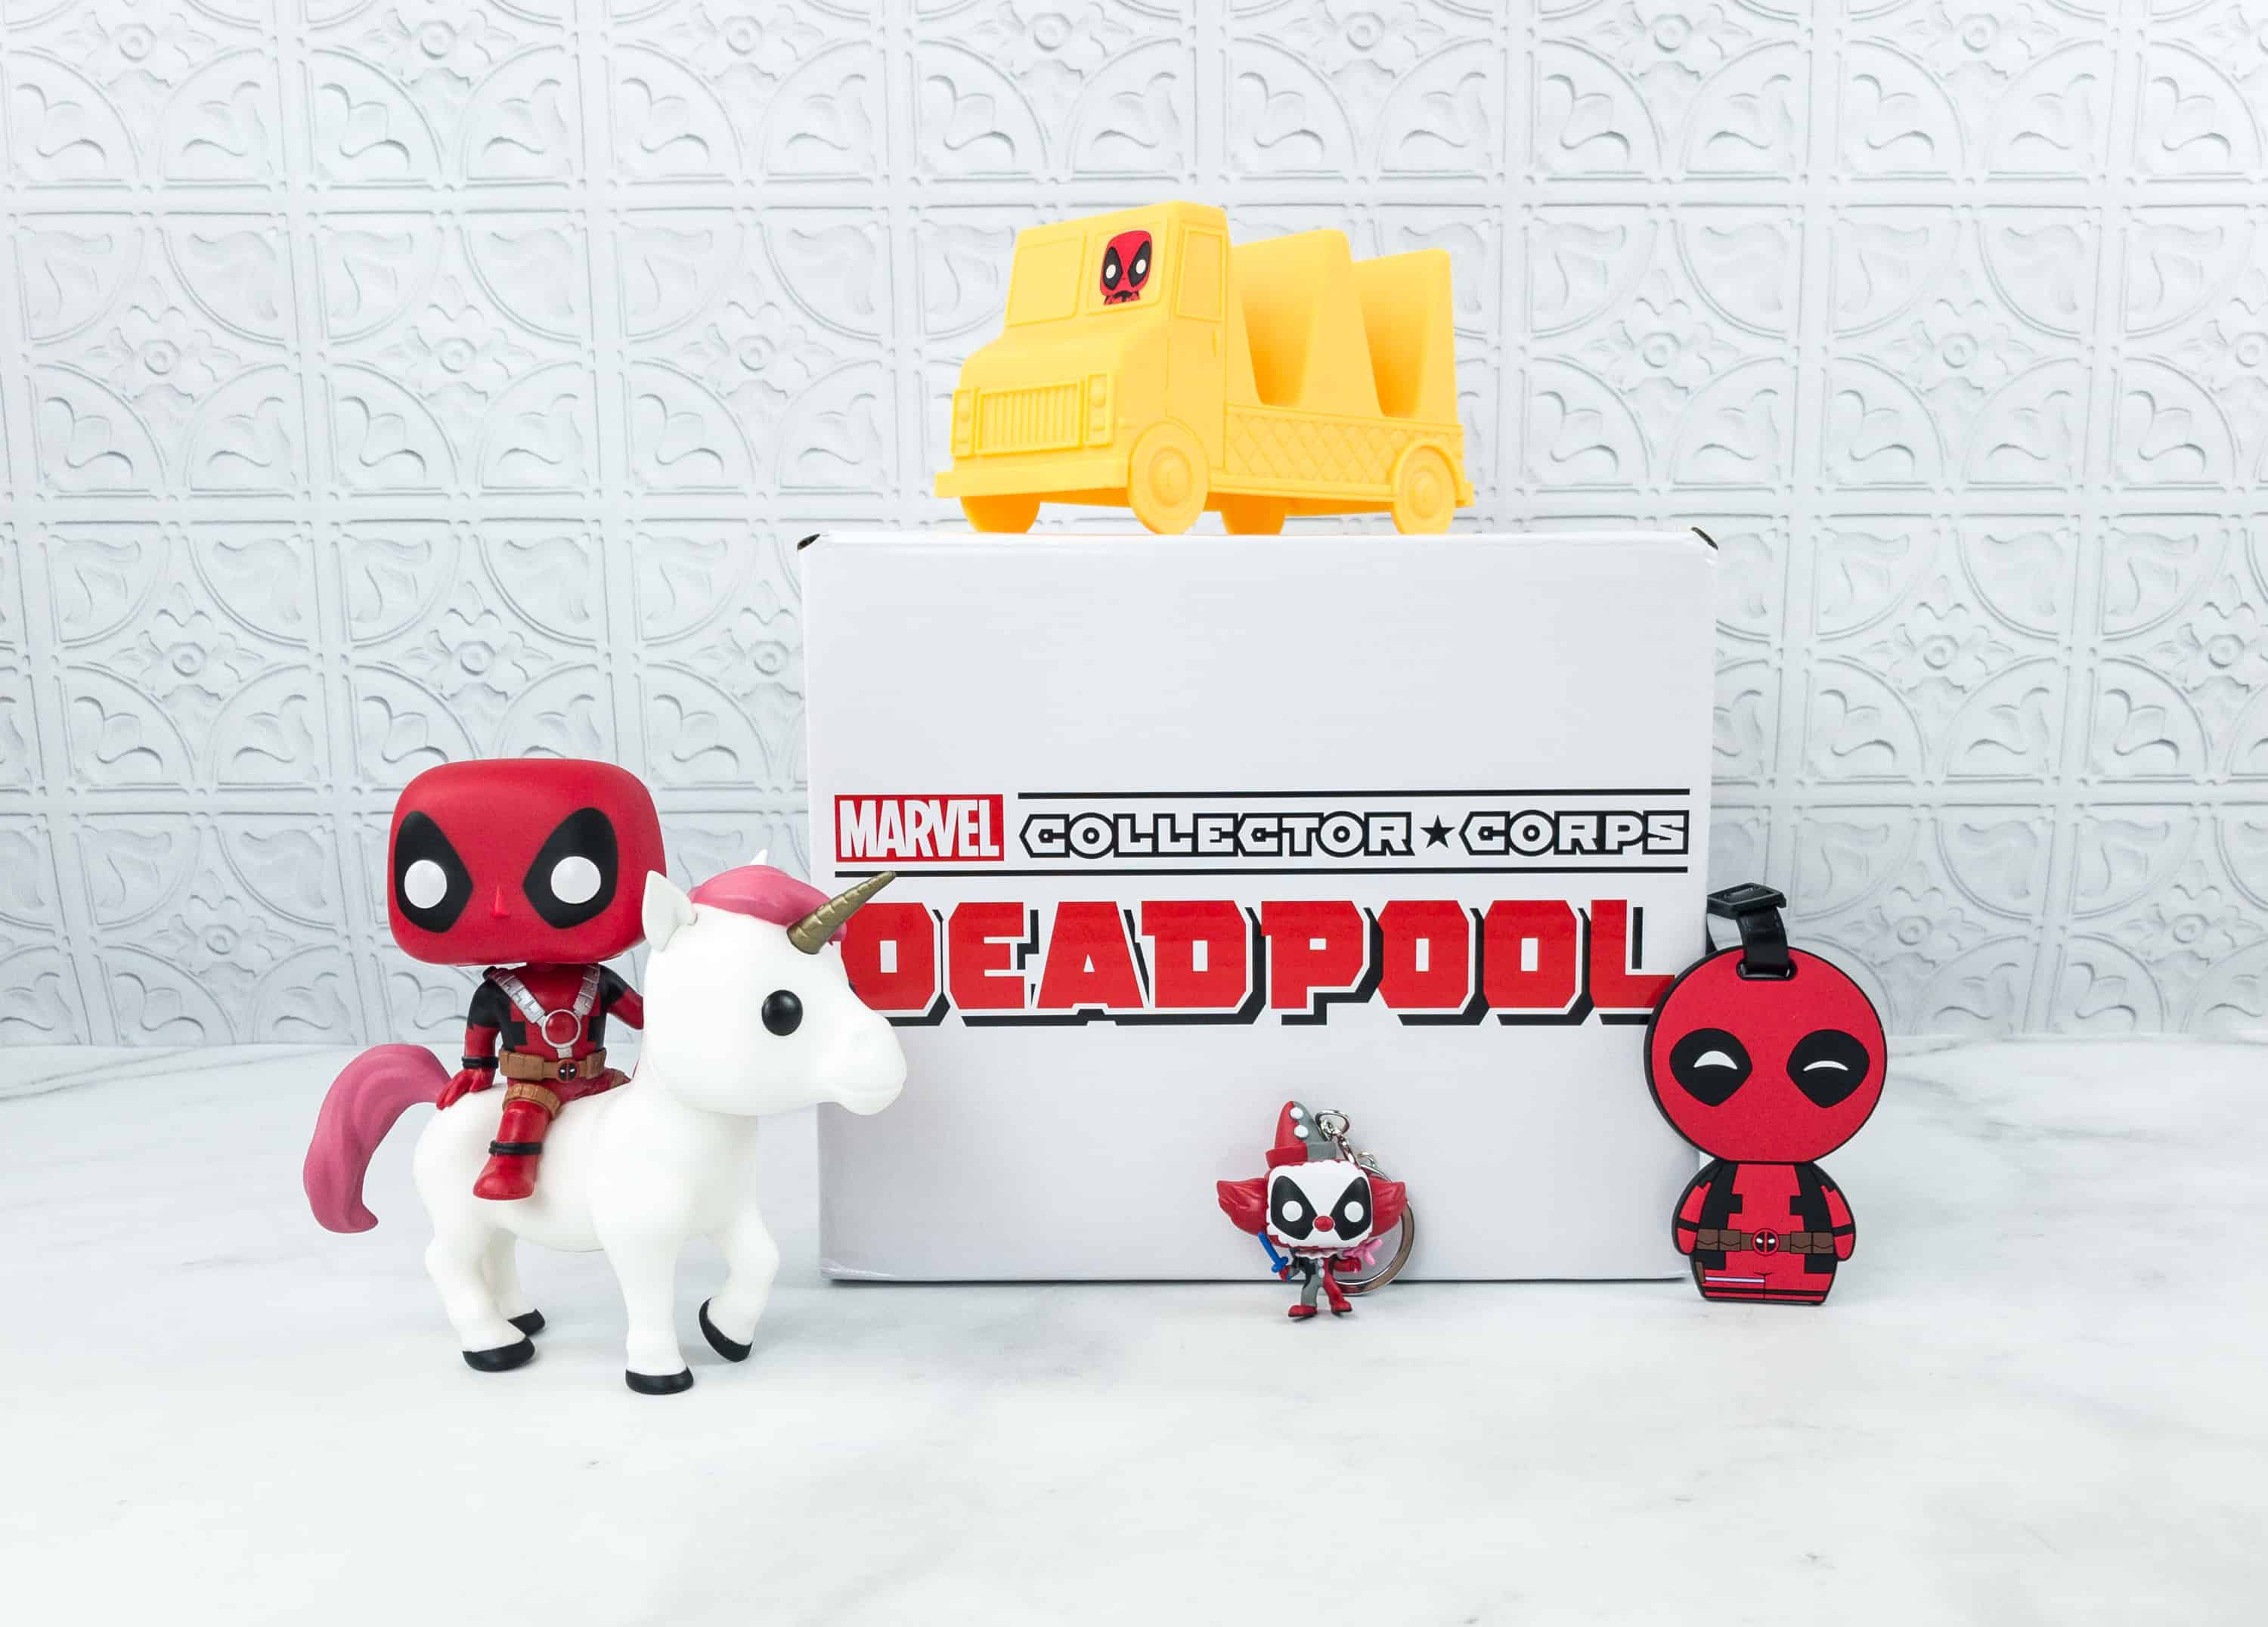 Marvel Collector Corps July 2018 Subscription Box Review – DEADPOOL